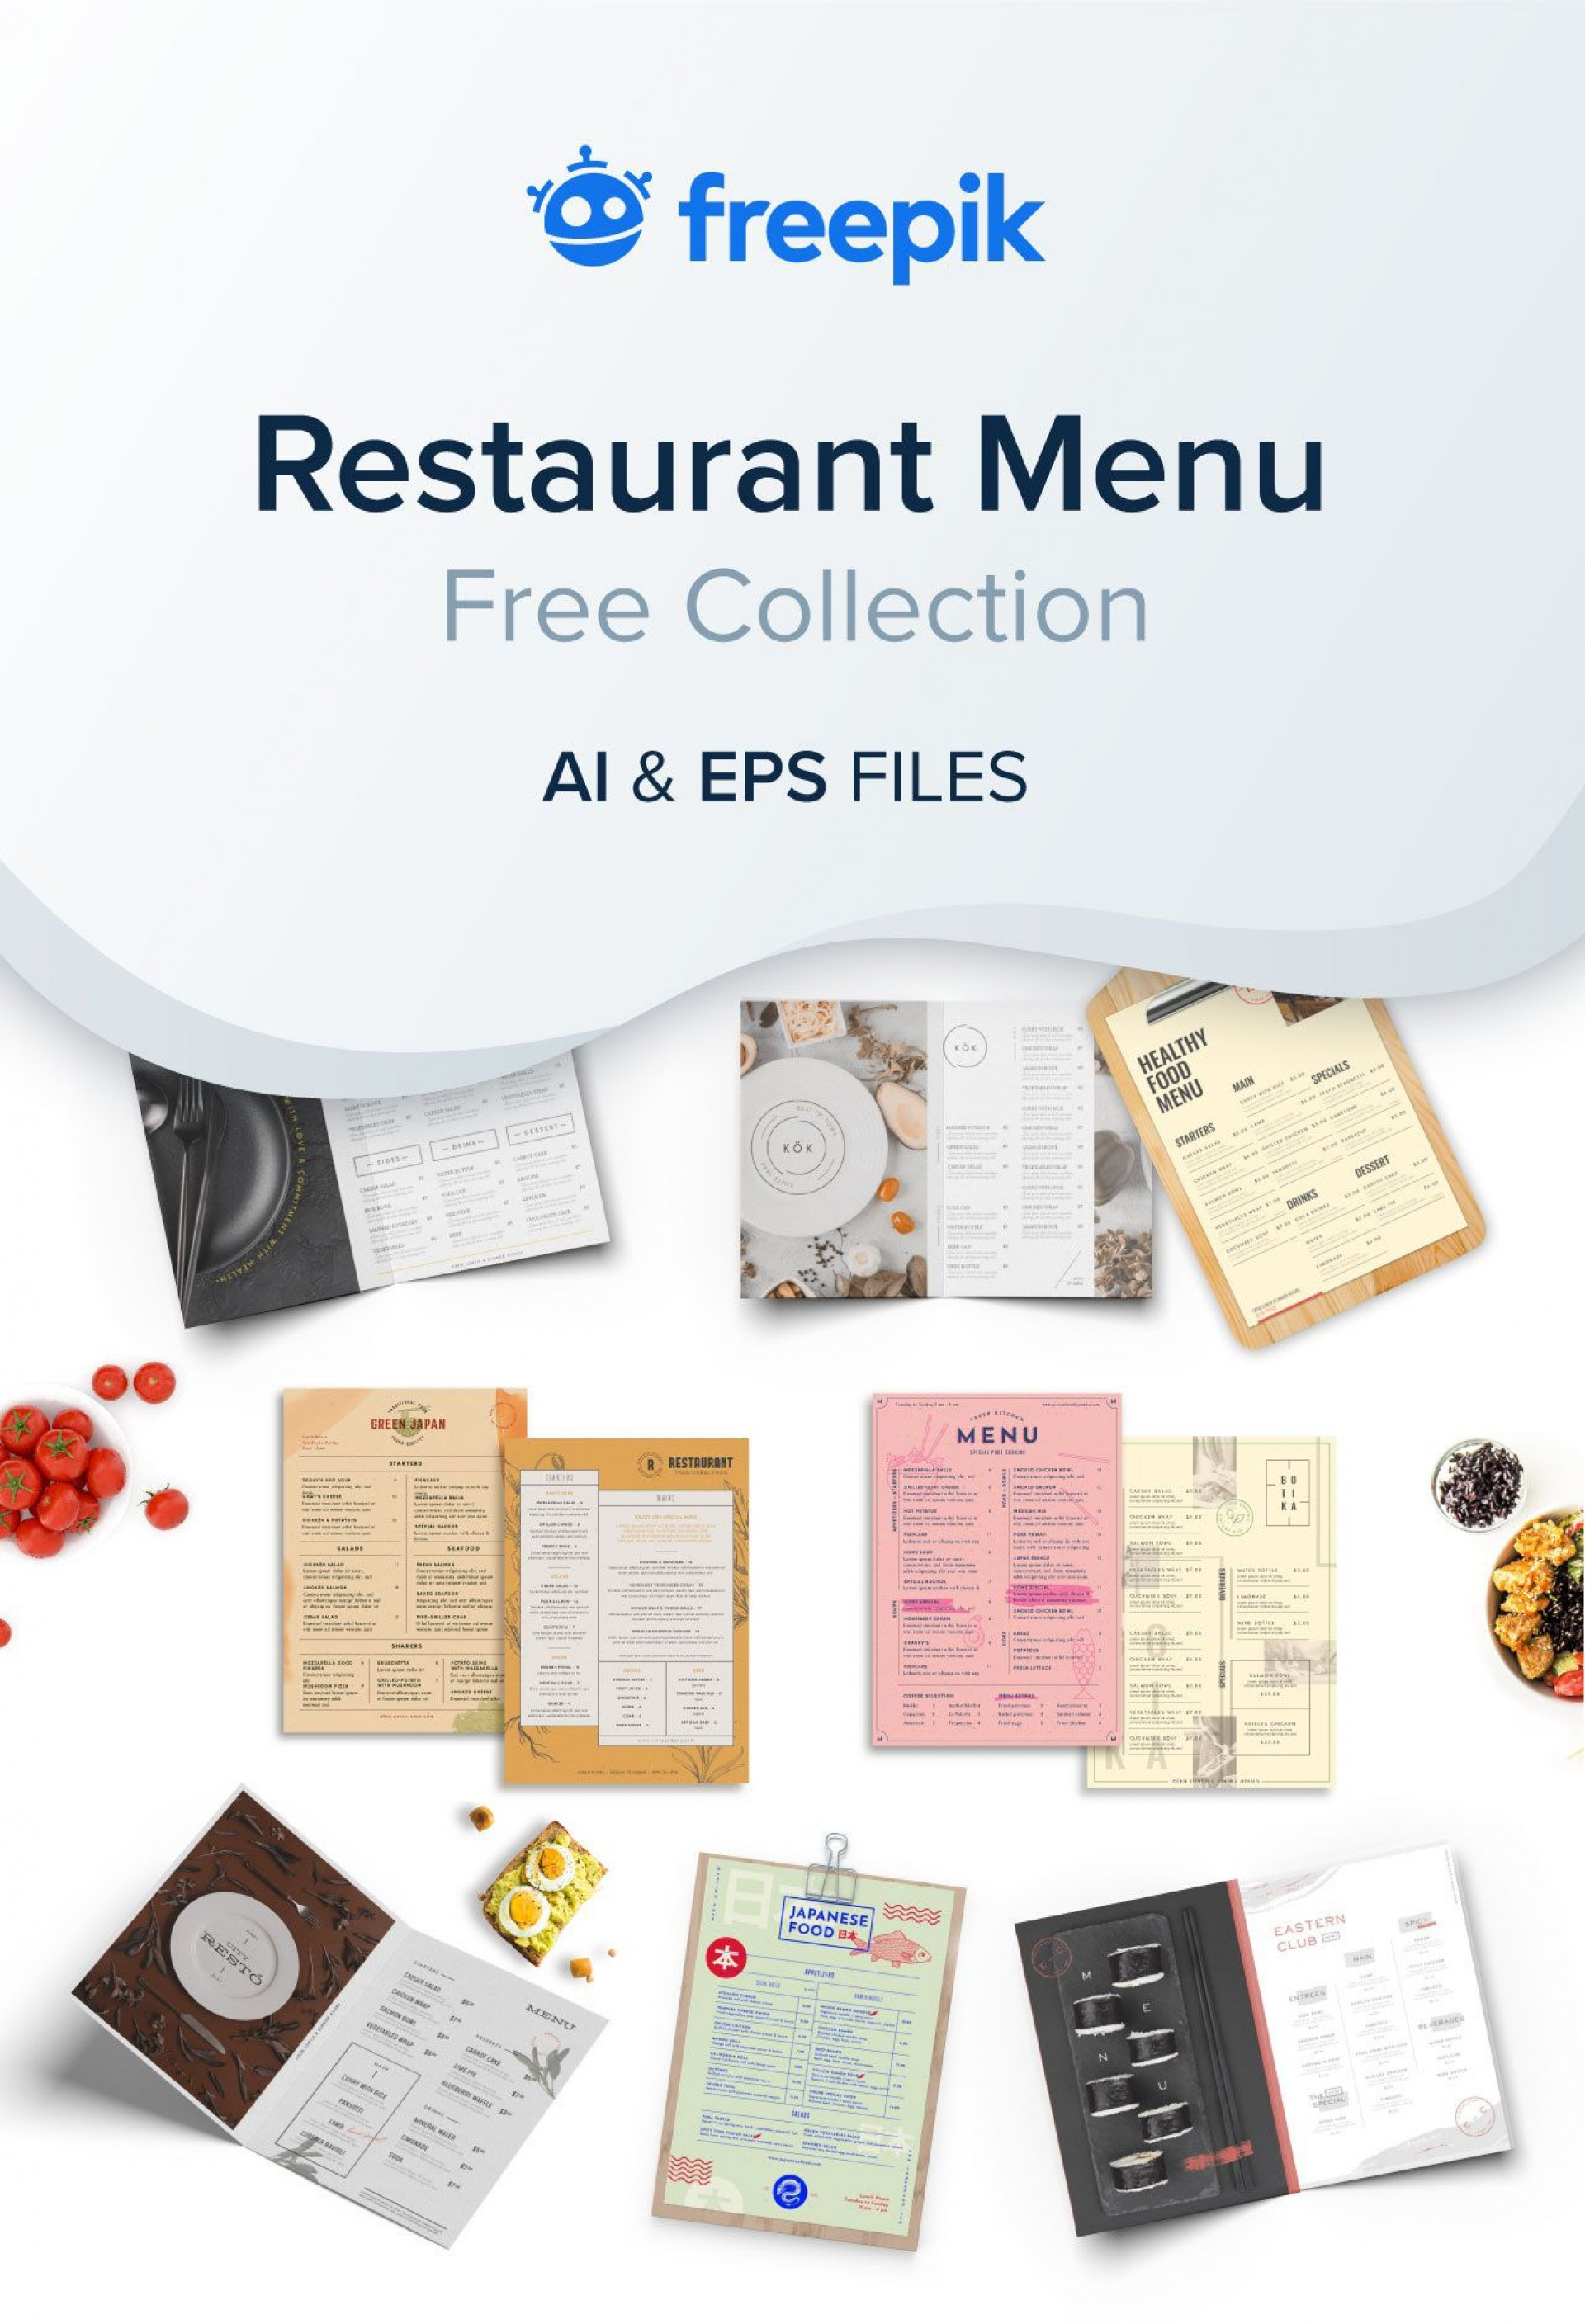 007 Outstanding Free Menu Template Download Example  Beauty Parlour Card Html Design Restaurant1920